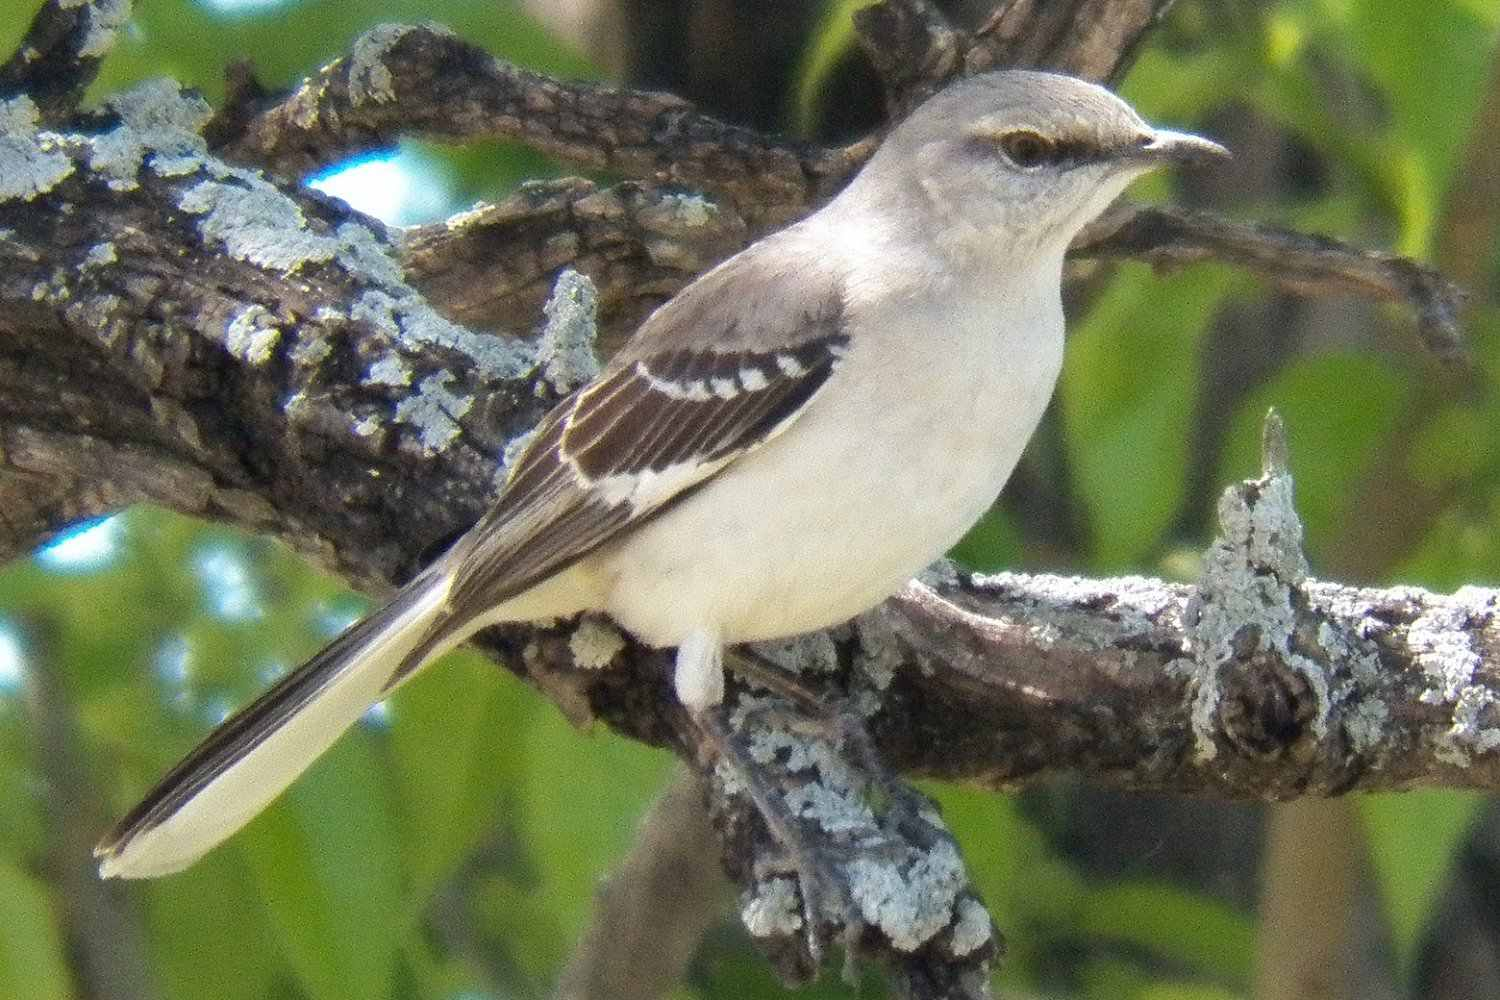 Northern Mockingbird, the state bird of Tennessee, on a tree branch.